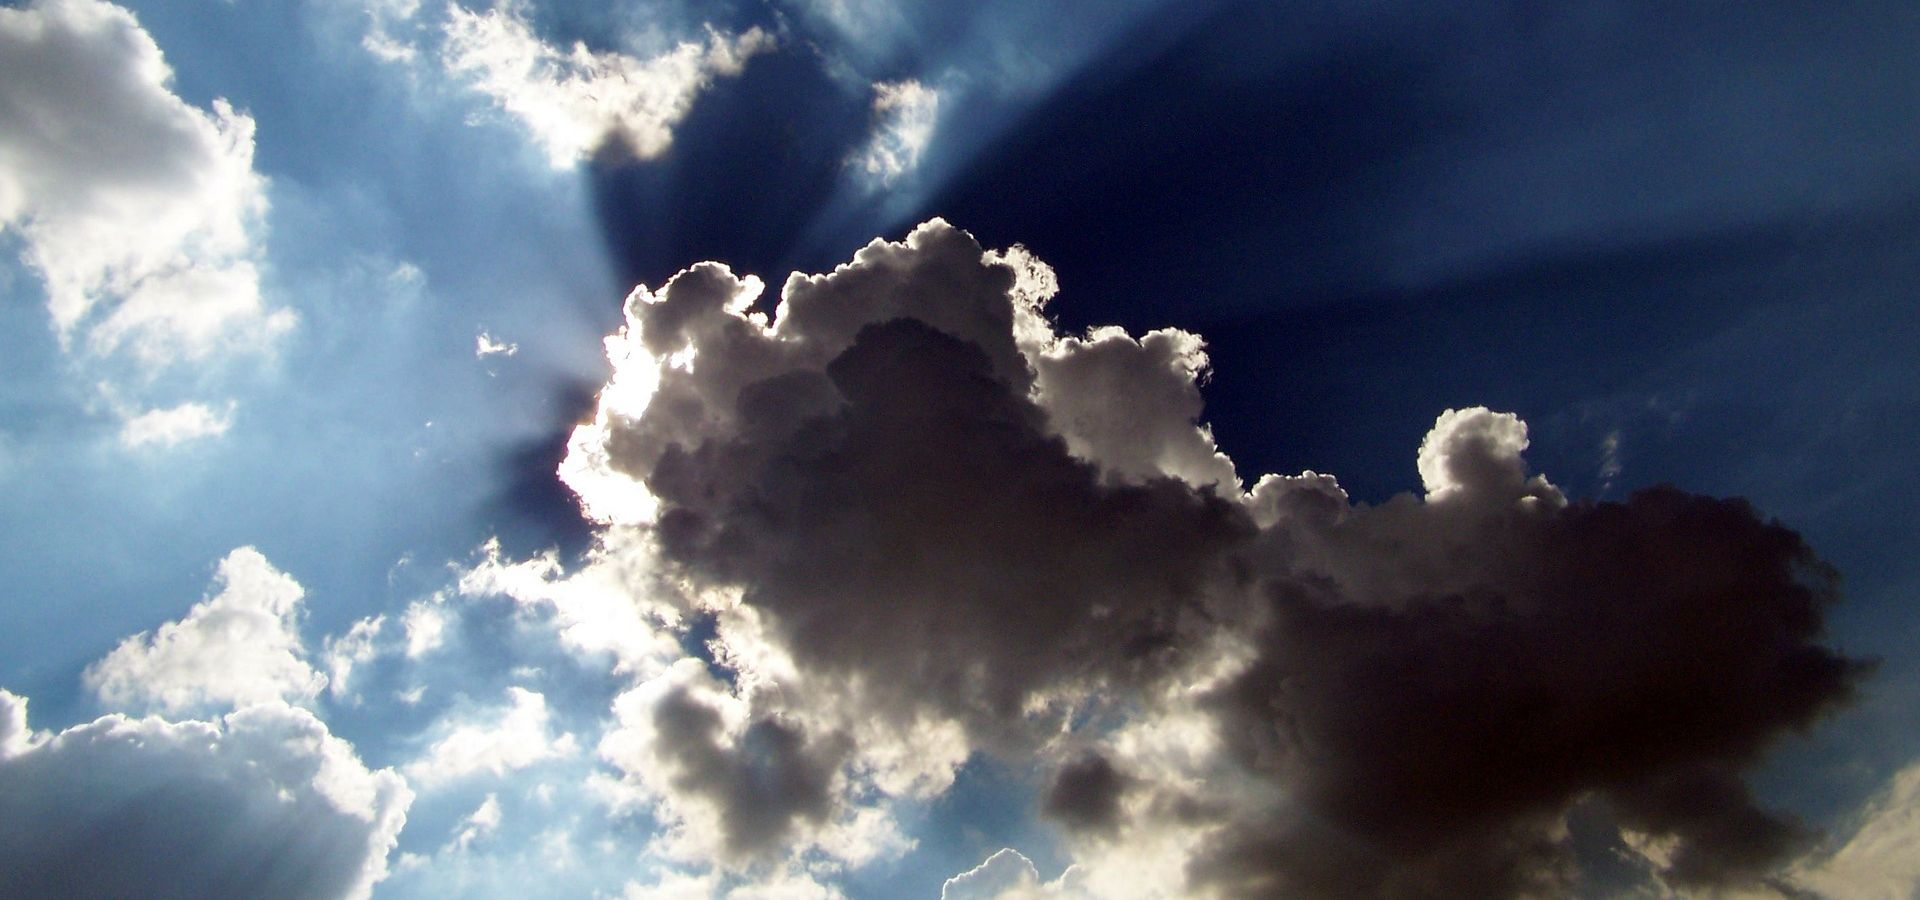 cloud in front of the sun, silver lining